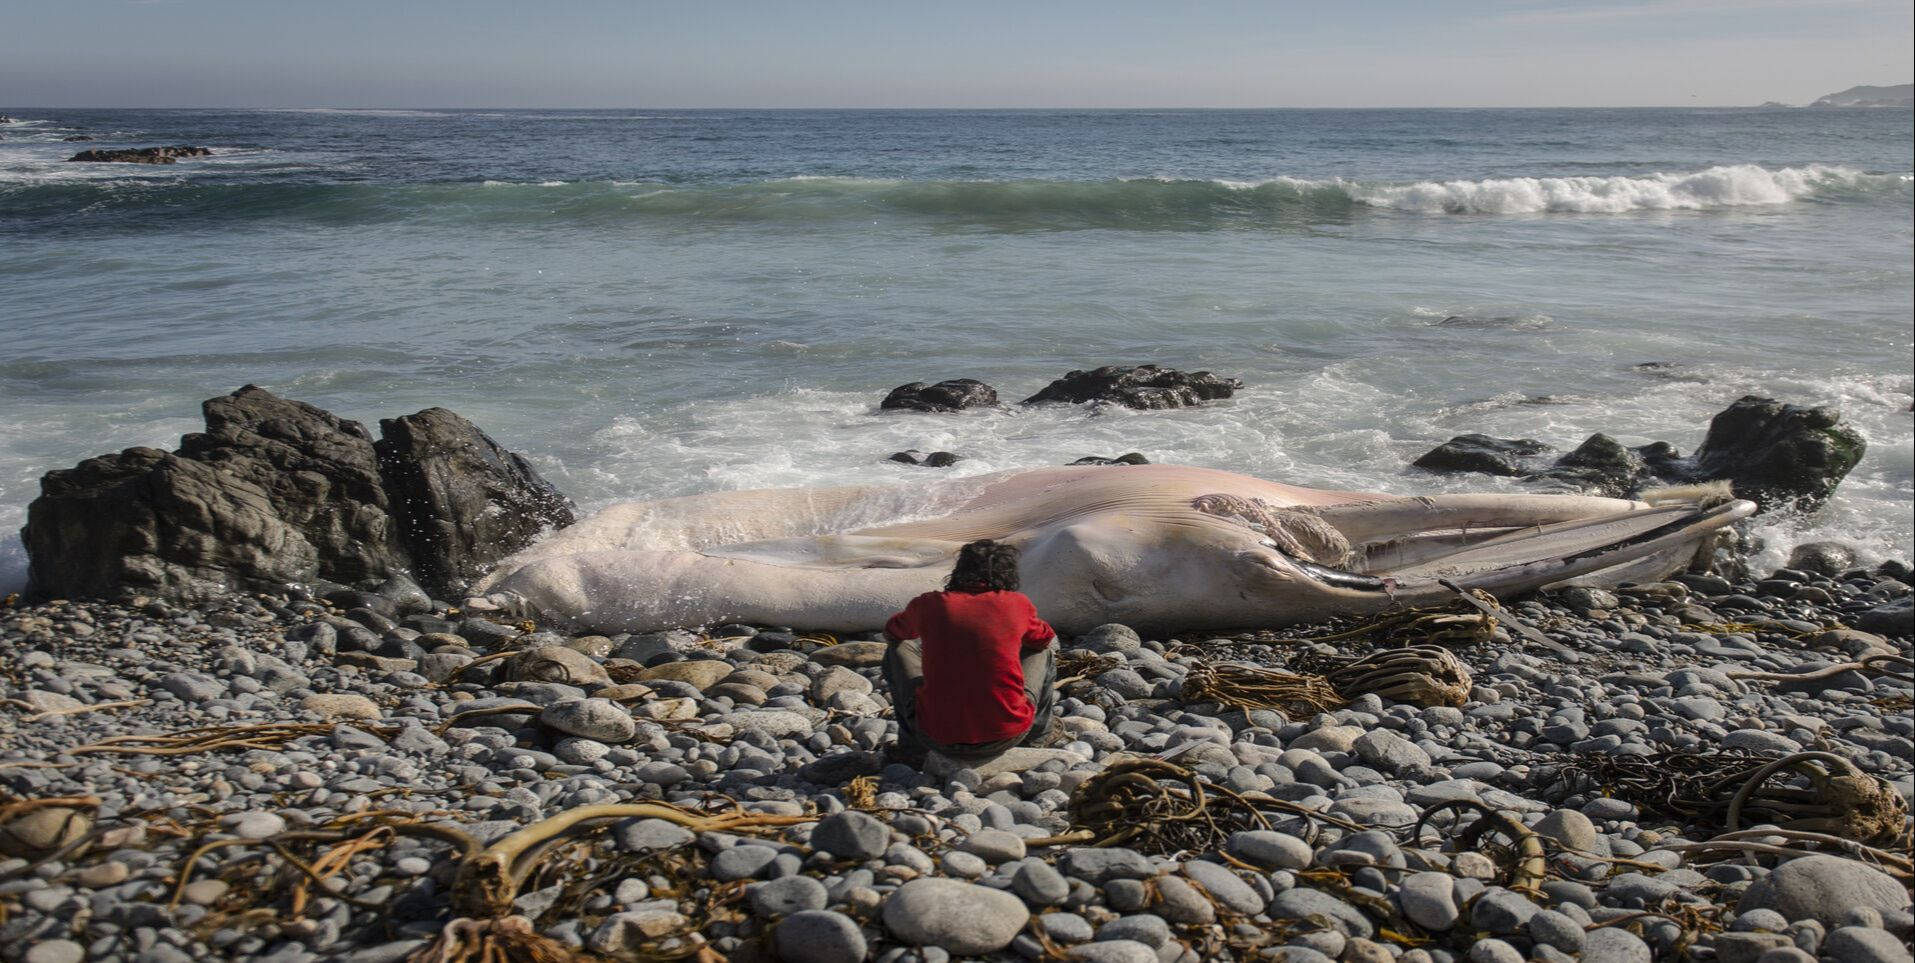 A man and a dead whale in a solitary beach in the documentary The Other One